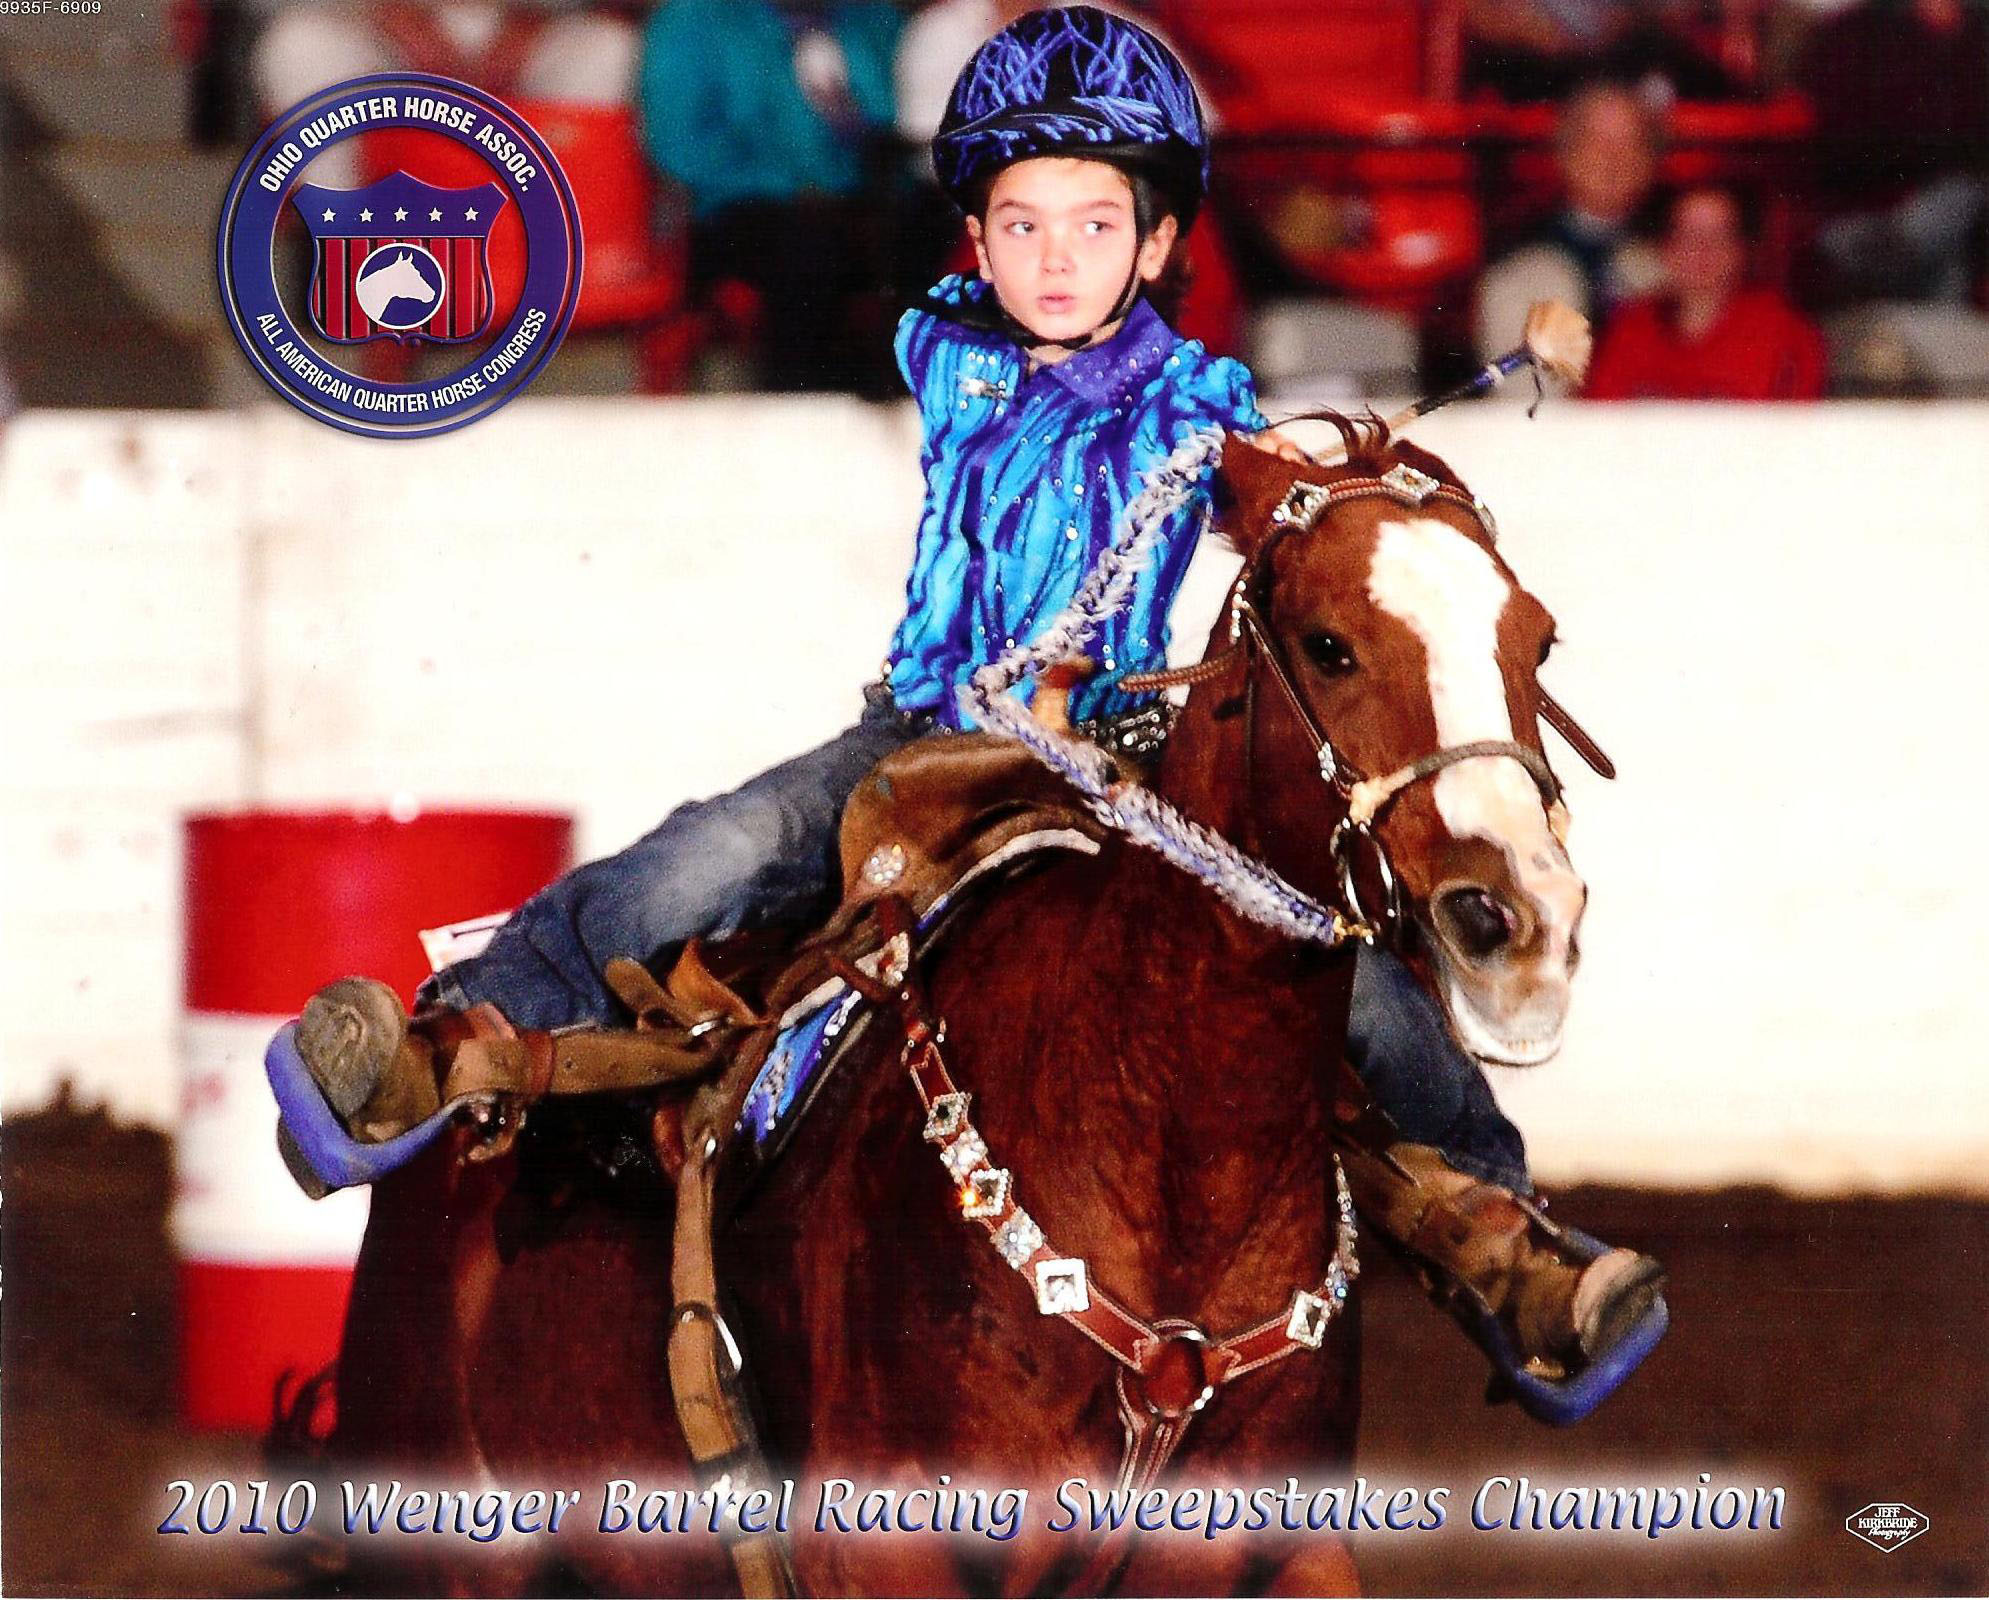 custom Equestrian Horse Saddle rider competition